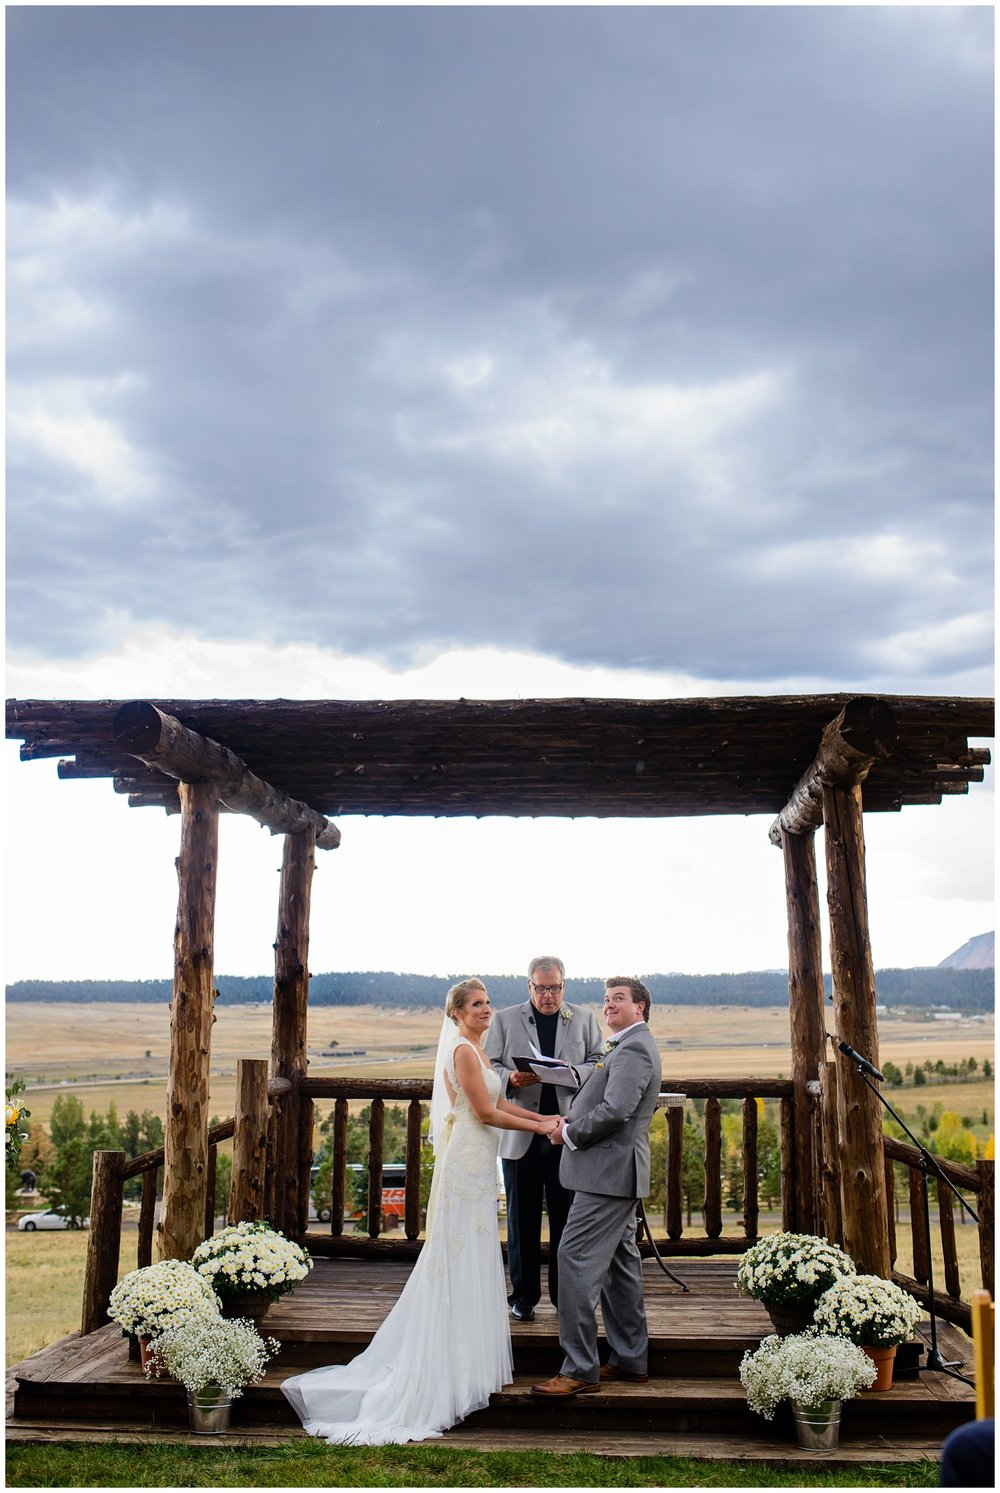 505-Spruce-mountain-ranch-colorado-wedding-photography.jpg